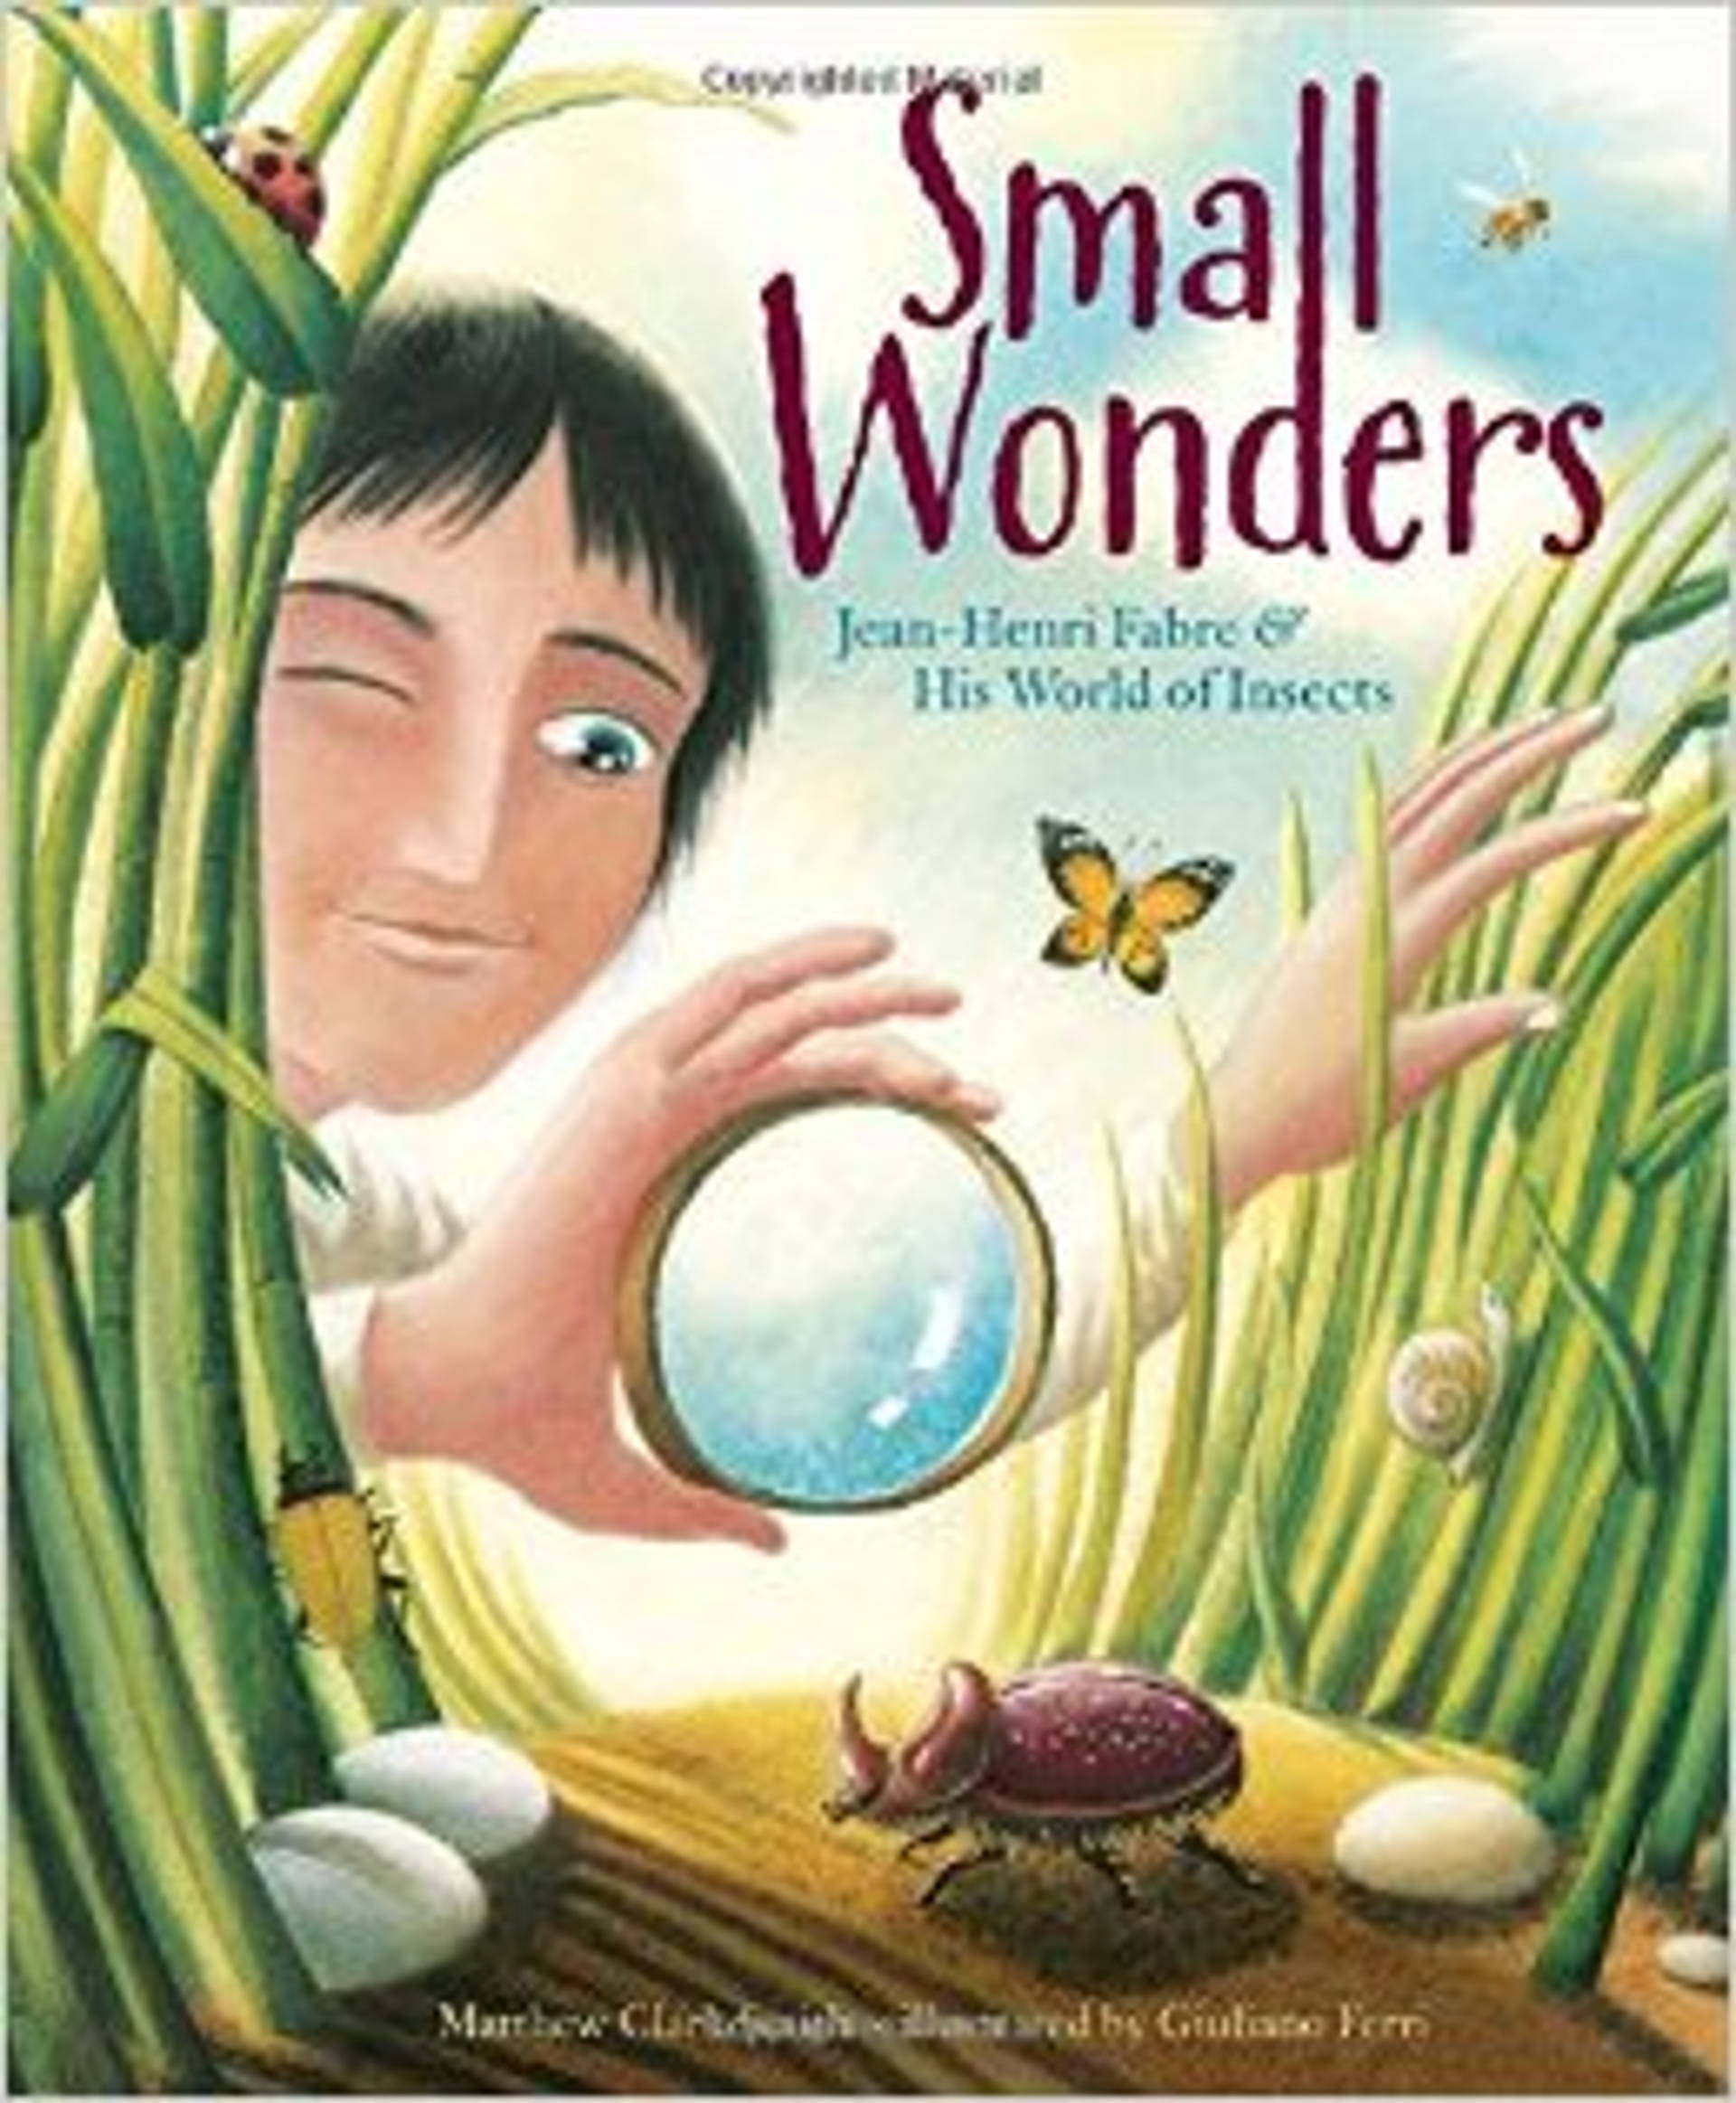 Small Wonders: Jean-Henri Fabre & His World of Insects